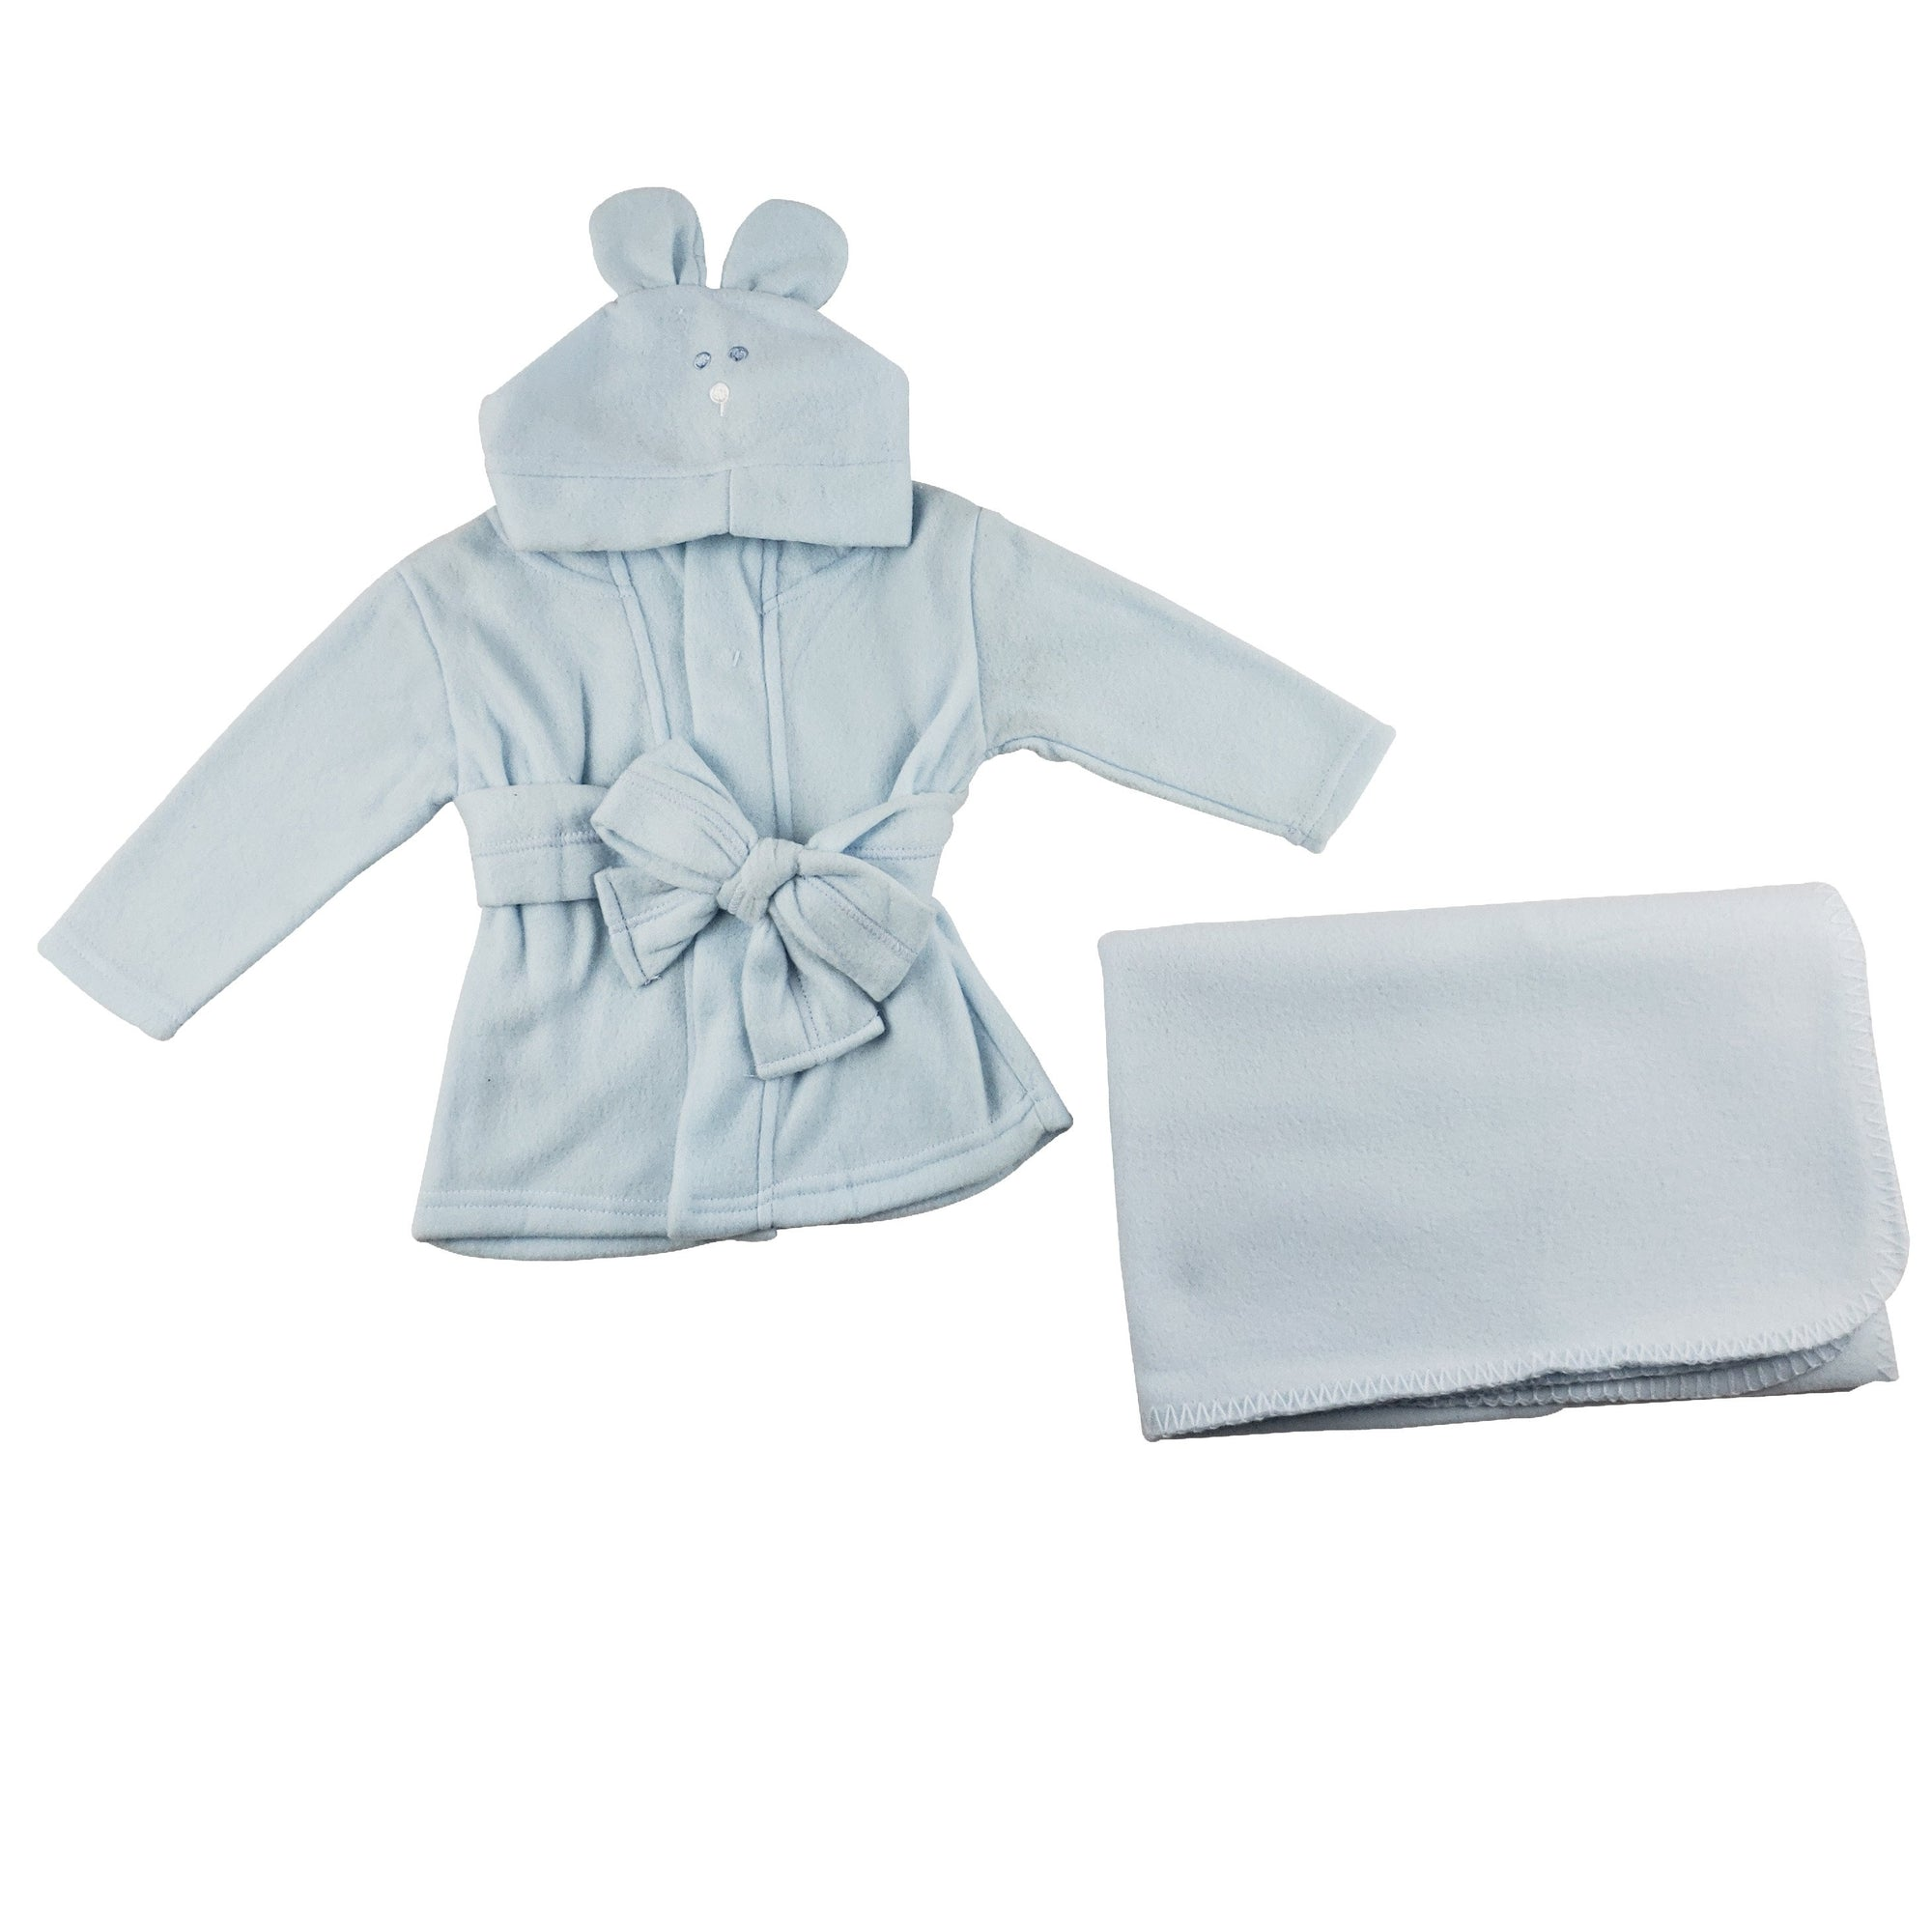 Fleece Robe and Blanket - 2 Pc Set - Baby World Inc